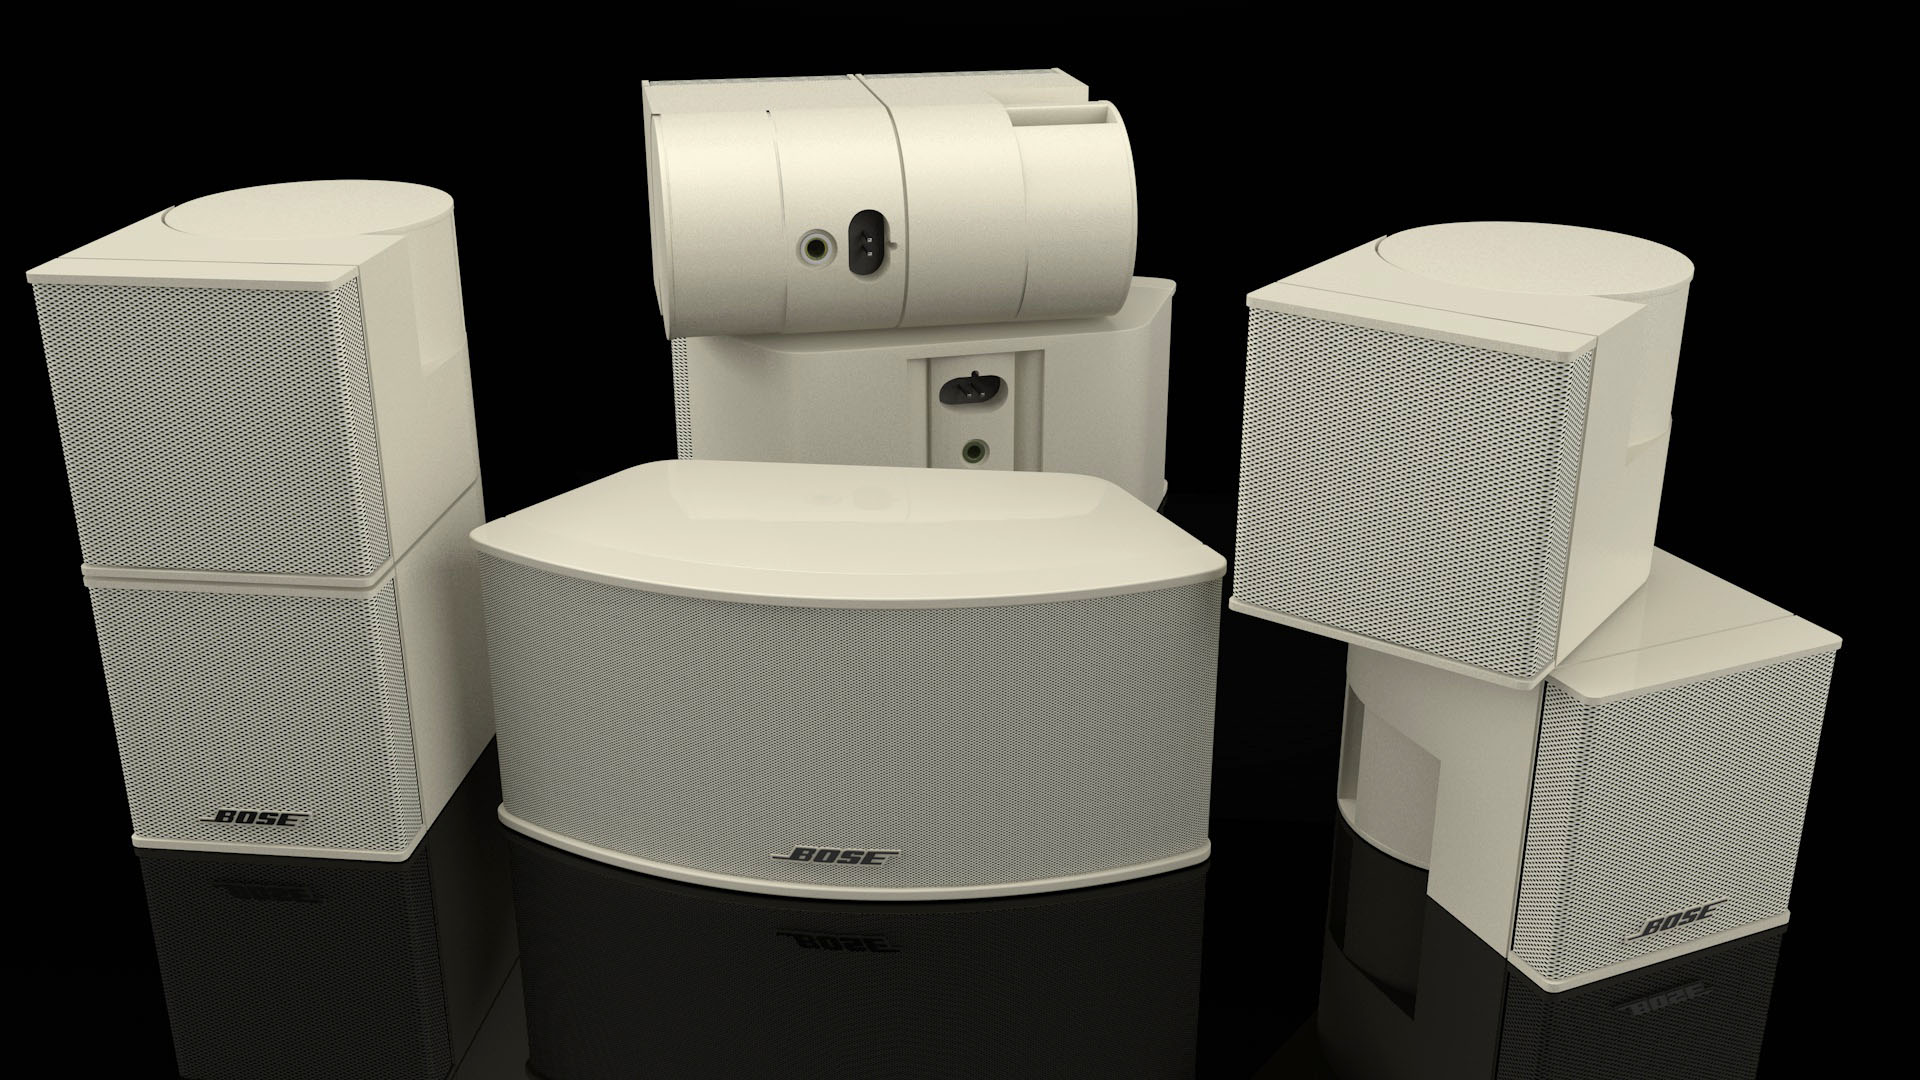 Bose Lifestyle Speakers in Cream CGI